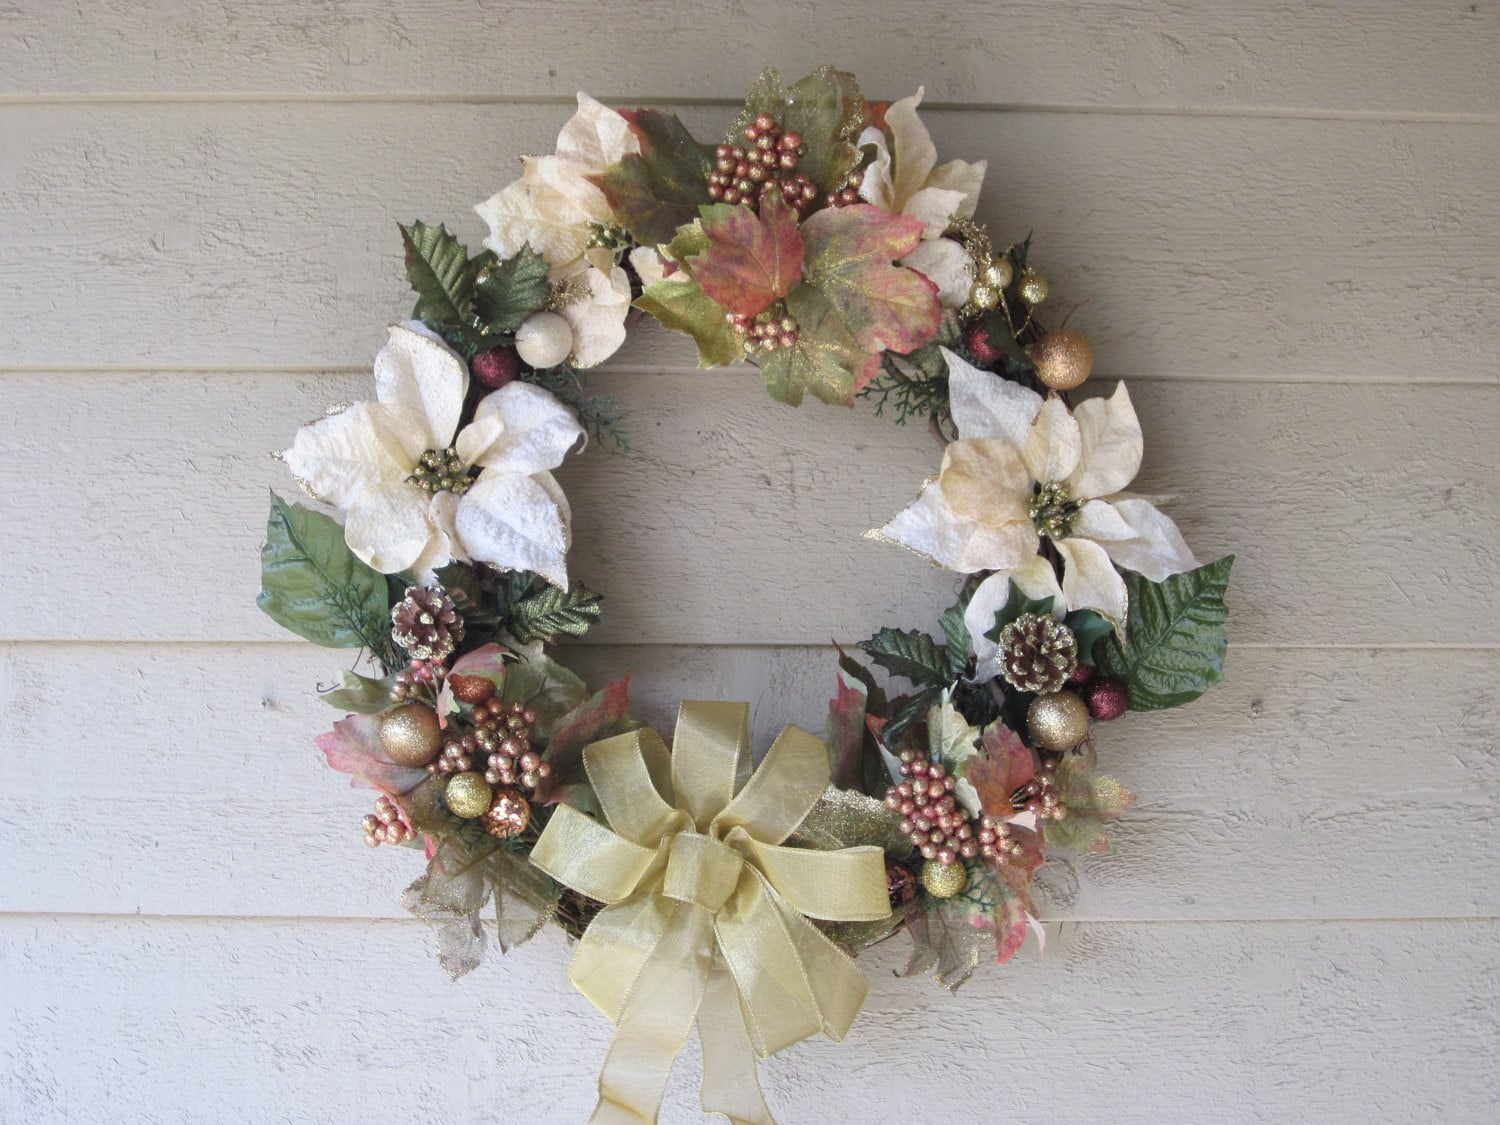 Frosted Leaves and Poinsettia Wreath